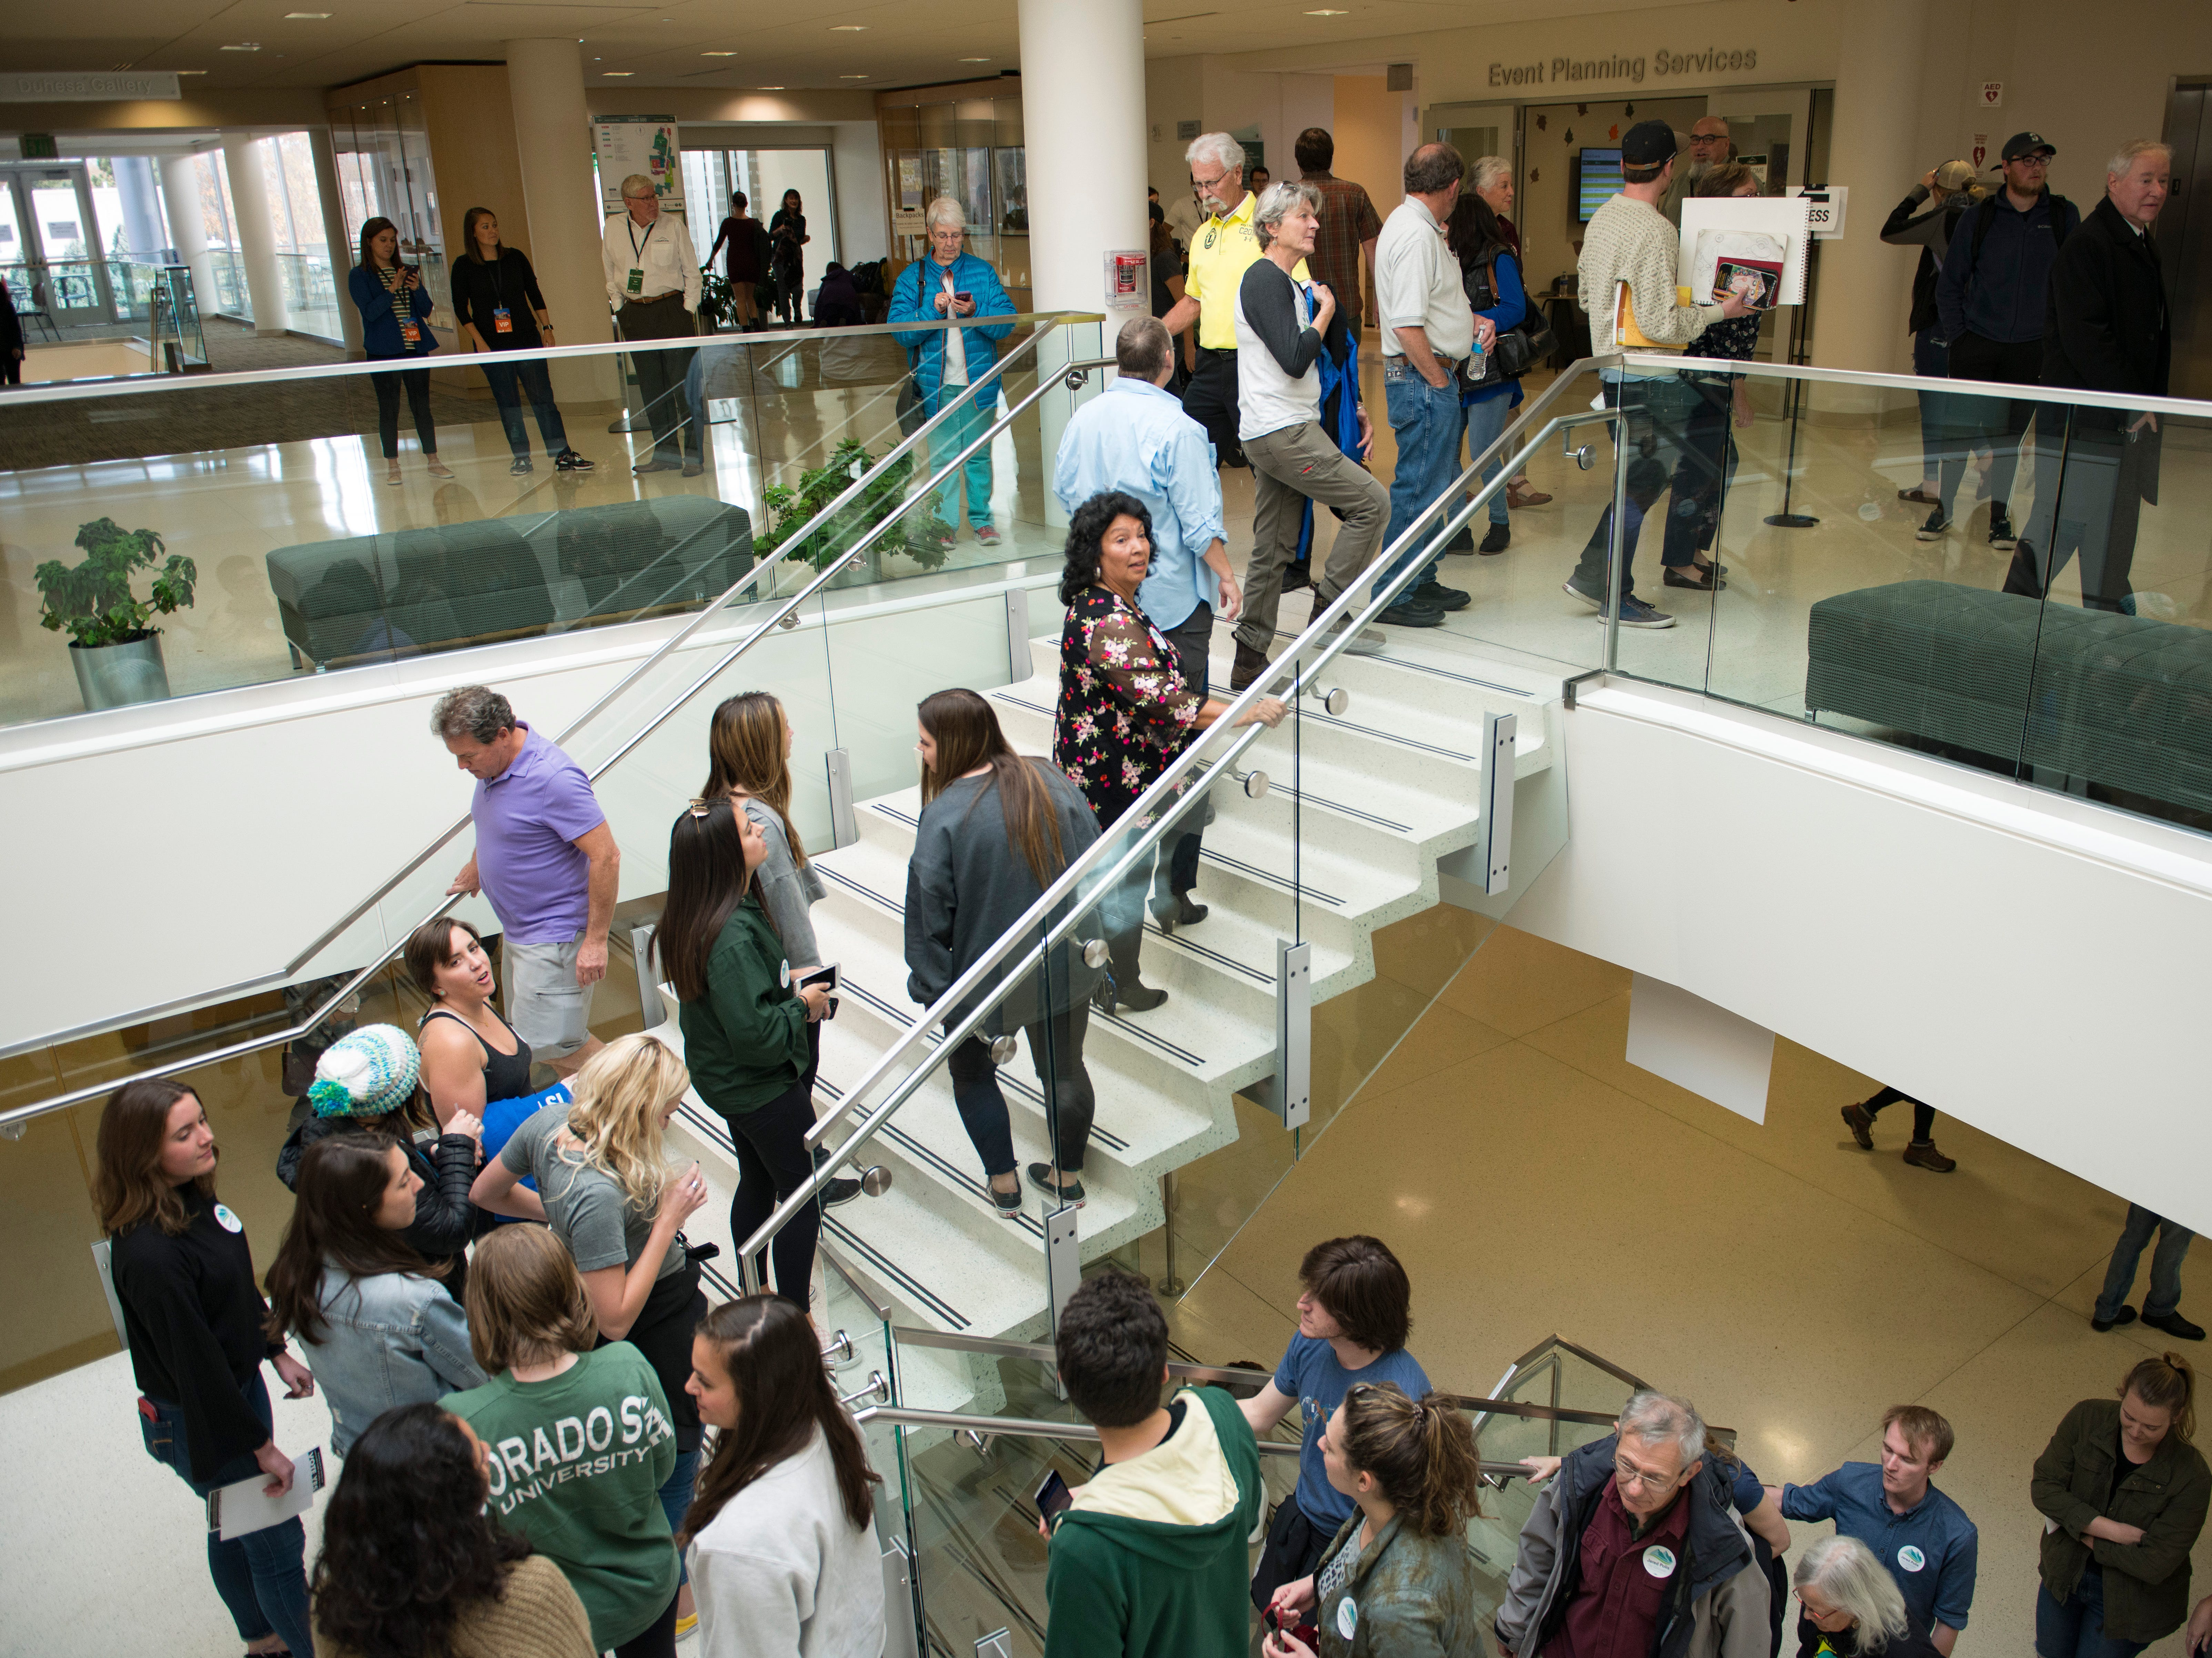 A line of hundreds is formed before a Colorado Democrats rally featuring Democratic candidate for Colorado Governor Jared Polis, U.S. Sen. Bernie Sanders, U.S. Sen. Michael Bennett and congressional candidate Joe Neguse at the Lory Student Center at CSU on Wednesday, October 24, 2018.